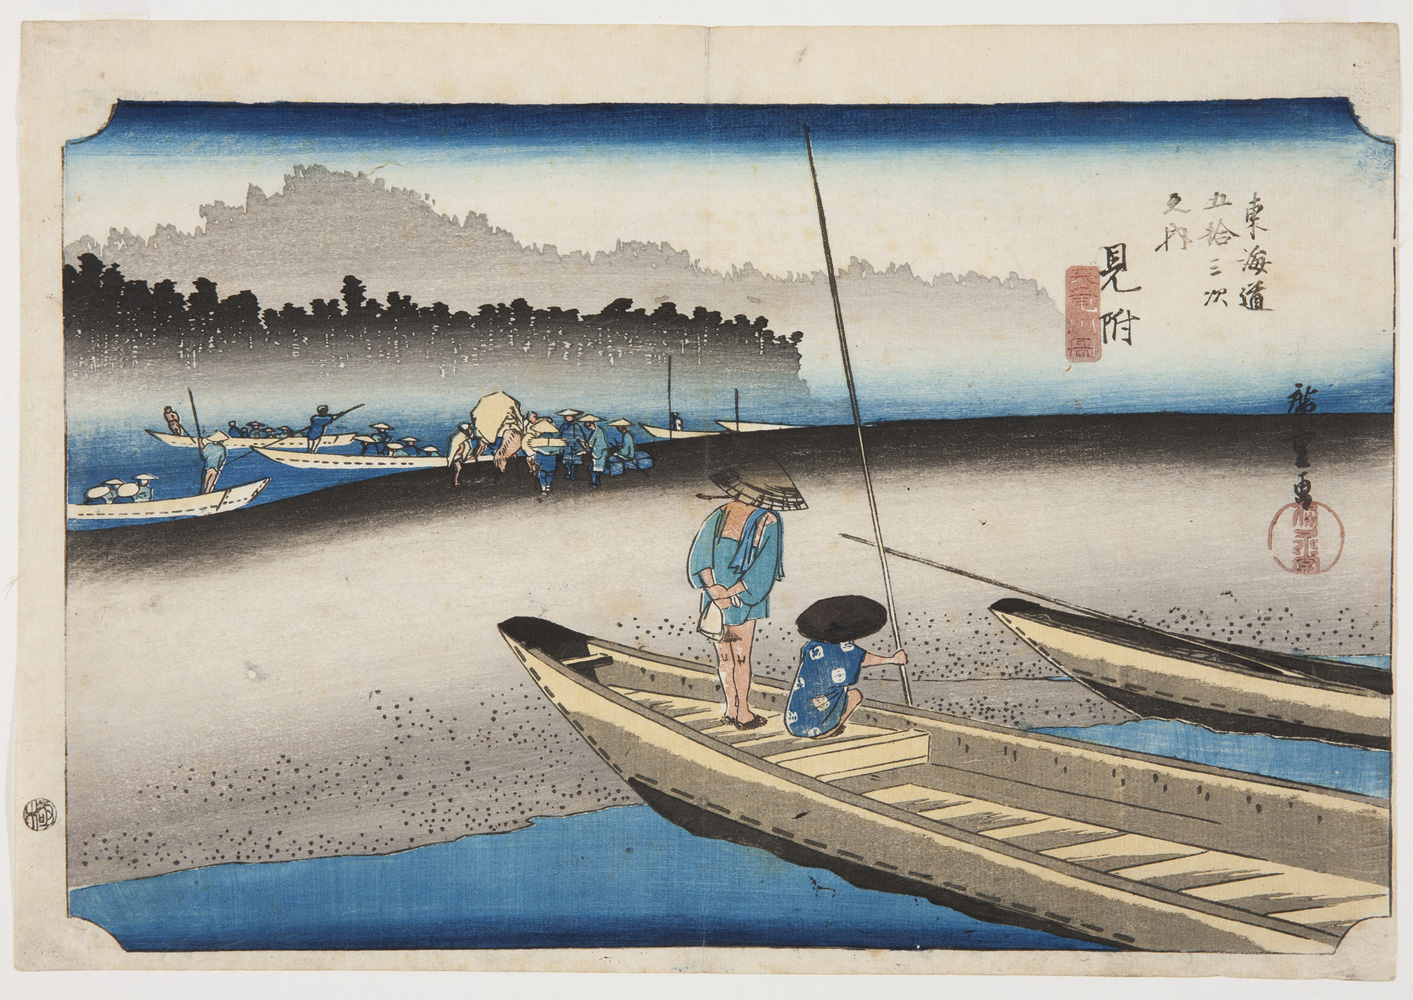 a japanese print of a ferry in the foreground with two people on it. in the background merchants and travellers stand or sit on ferries